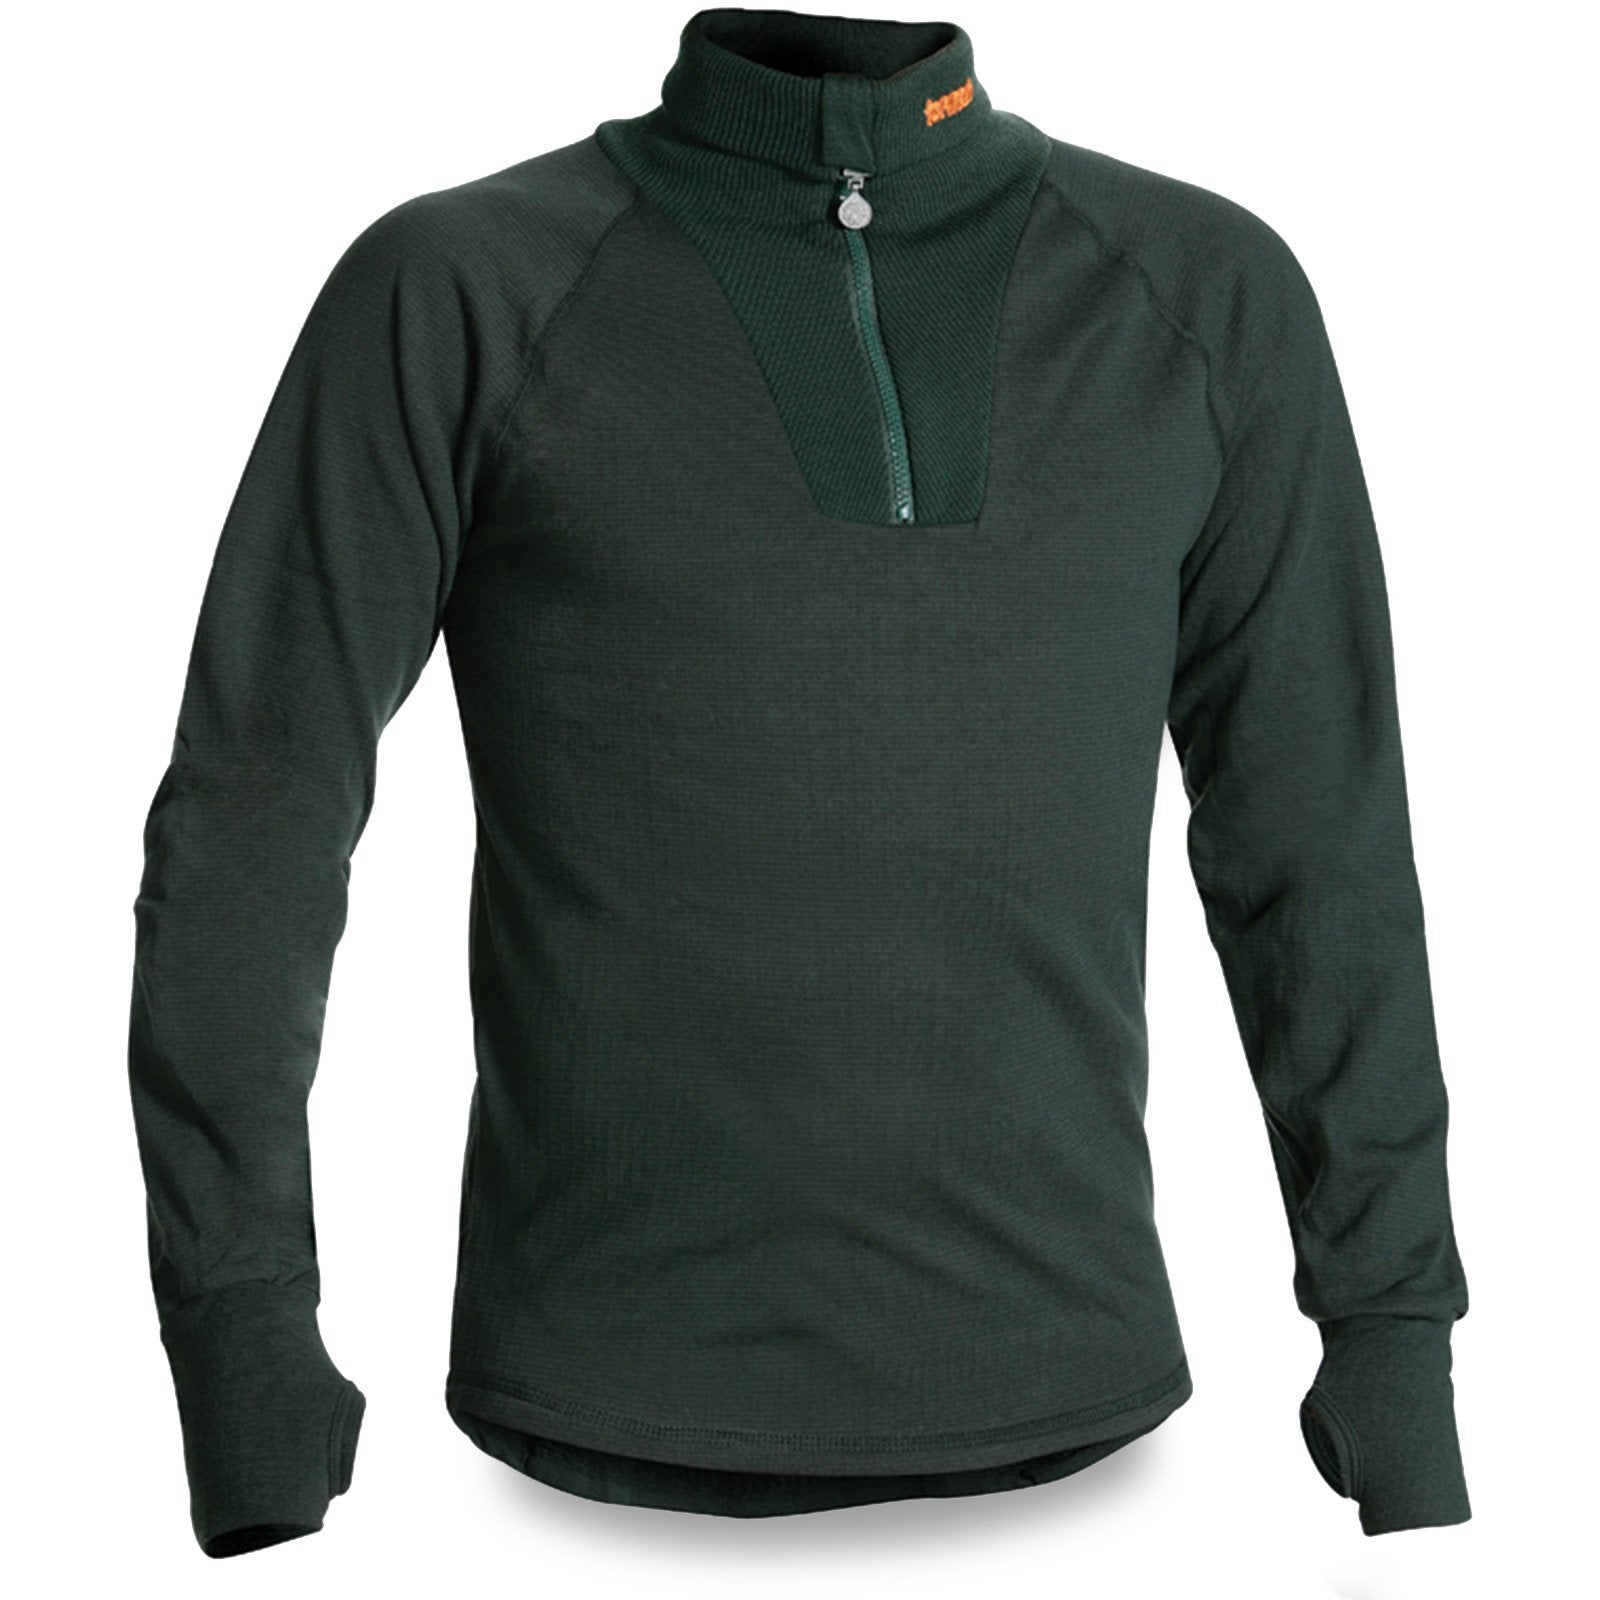 Termo Original Heavy Base Layer Top | UKMCPro